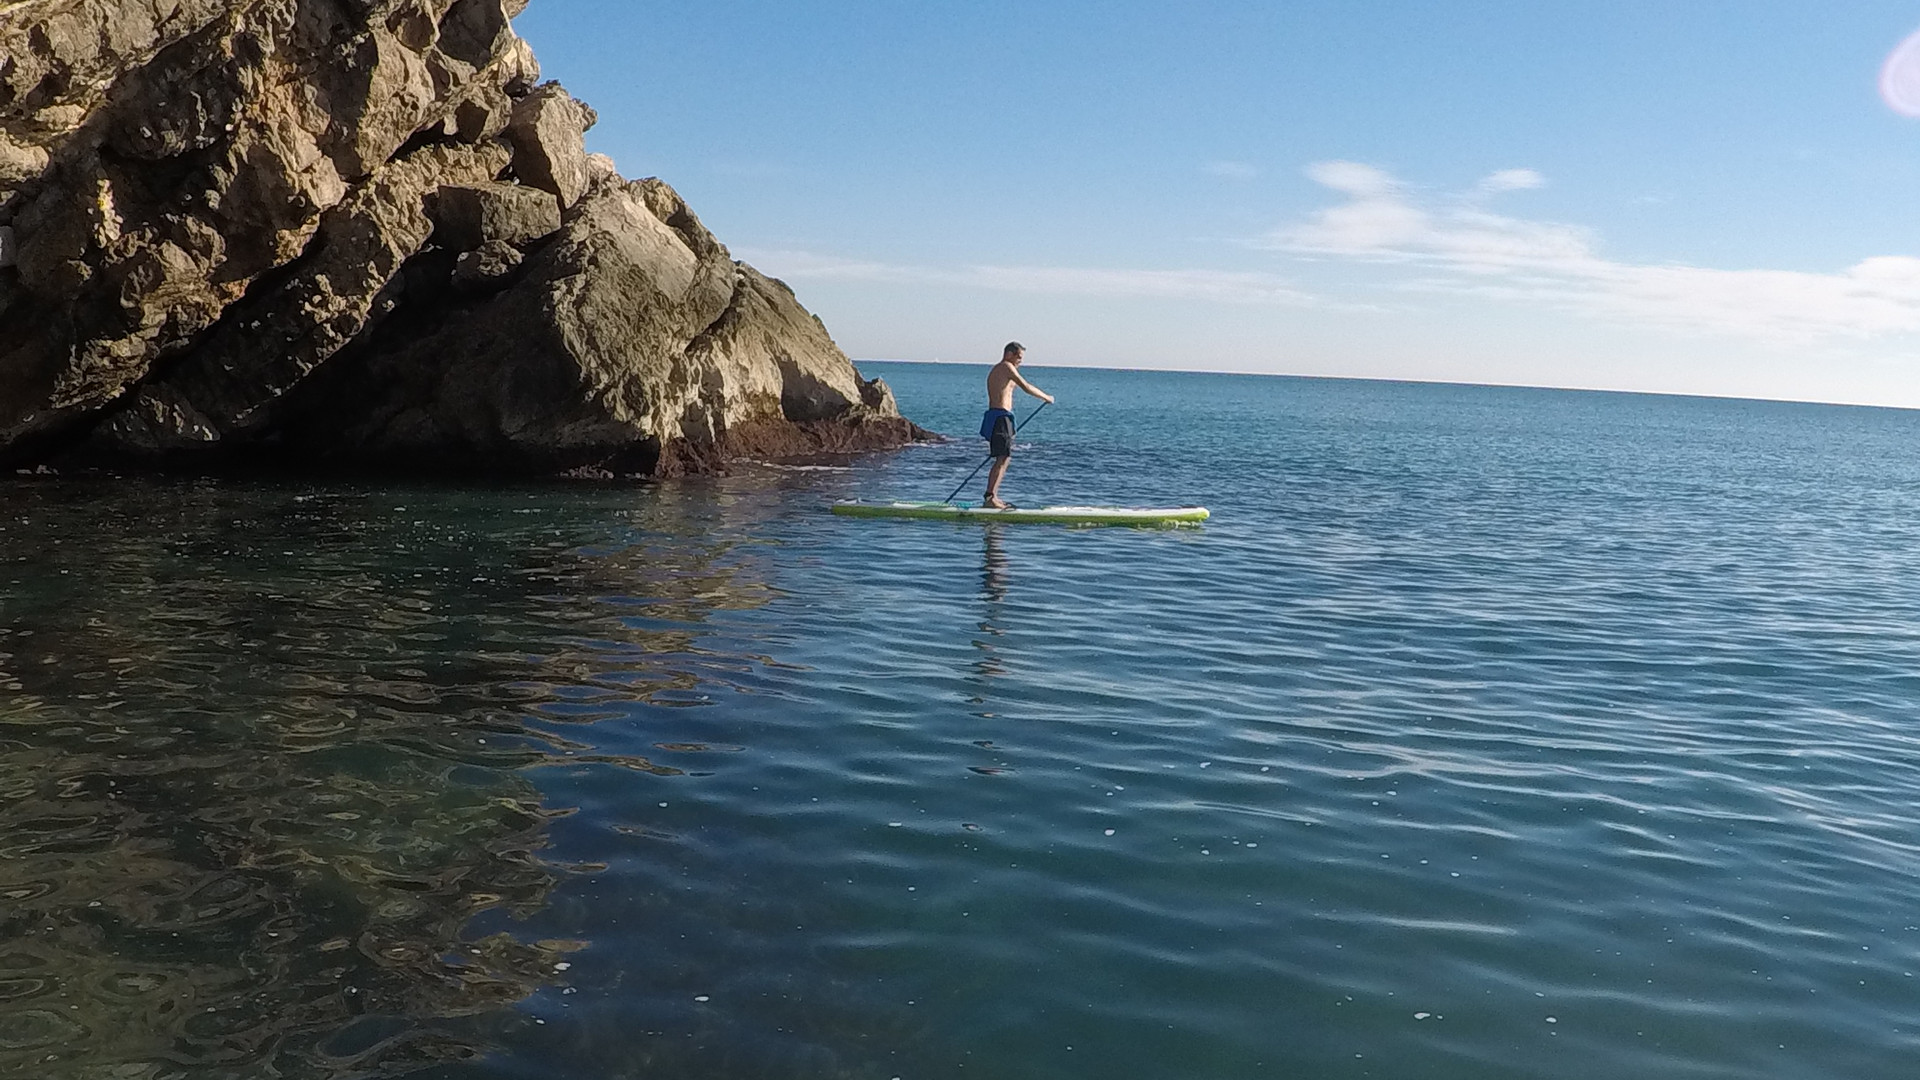 Excursion Paddlesurf Vilanova